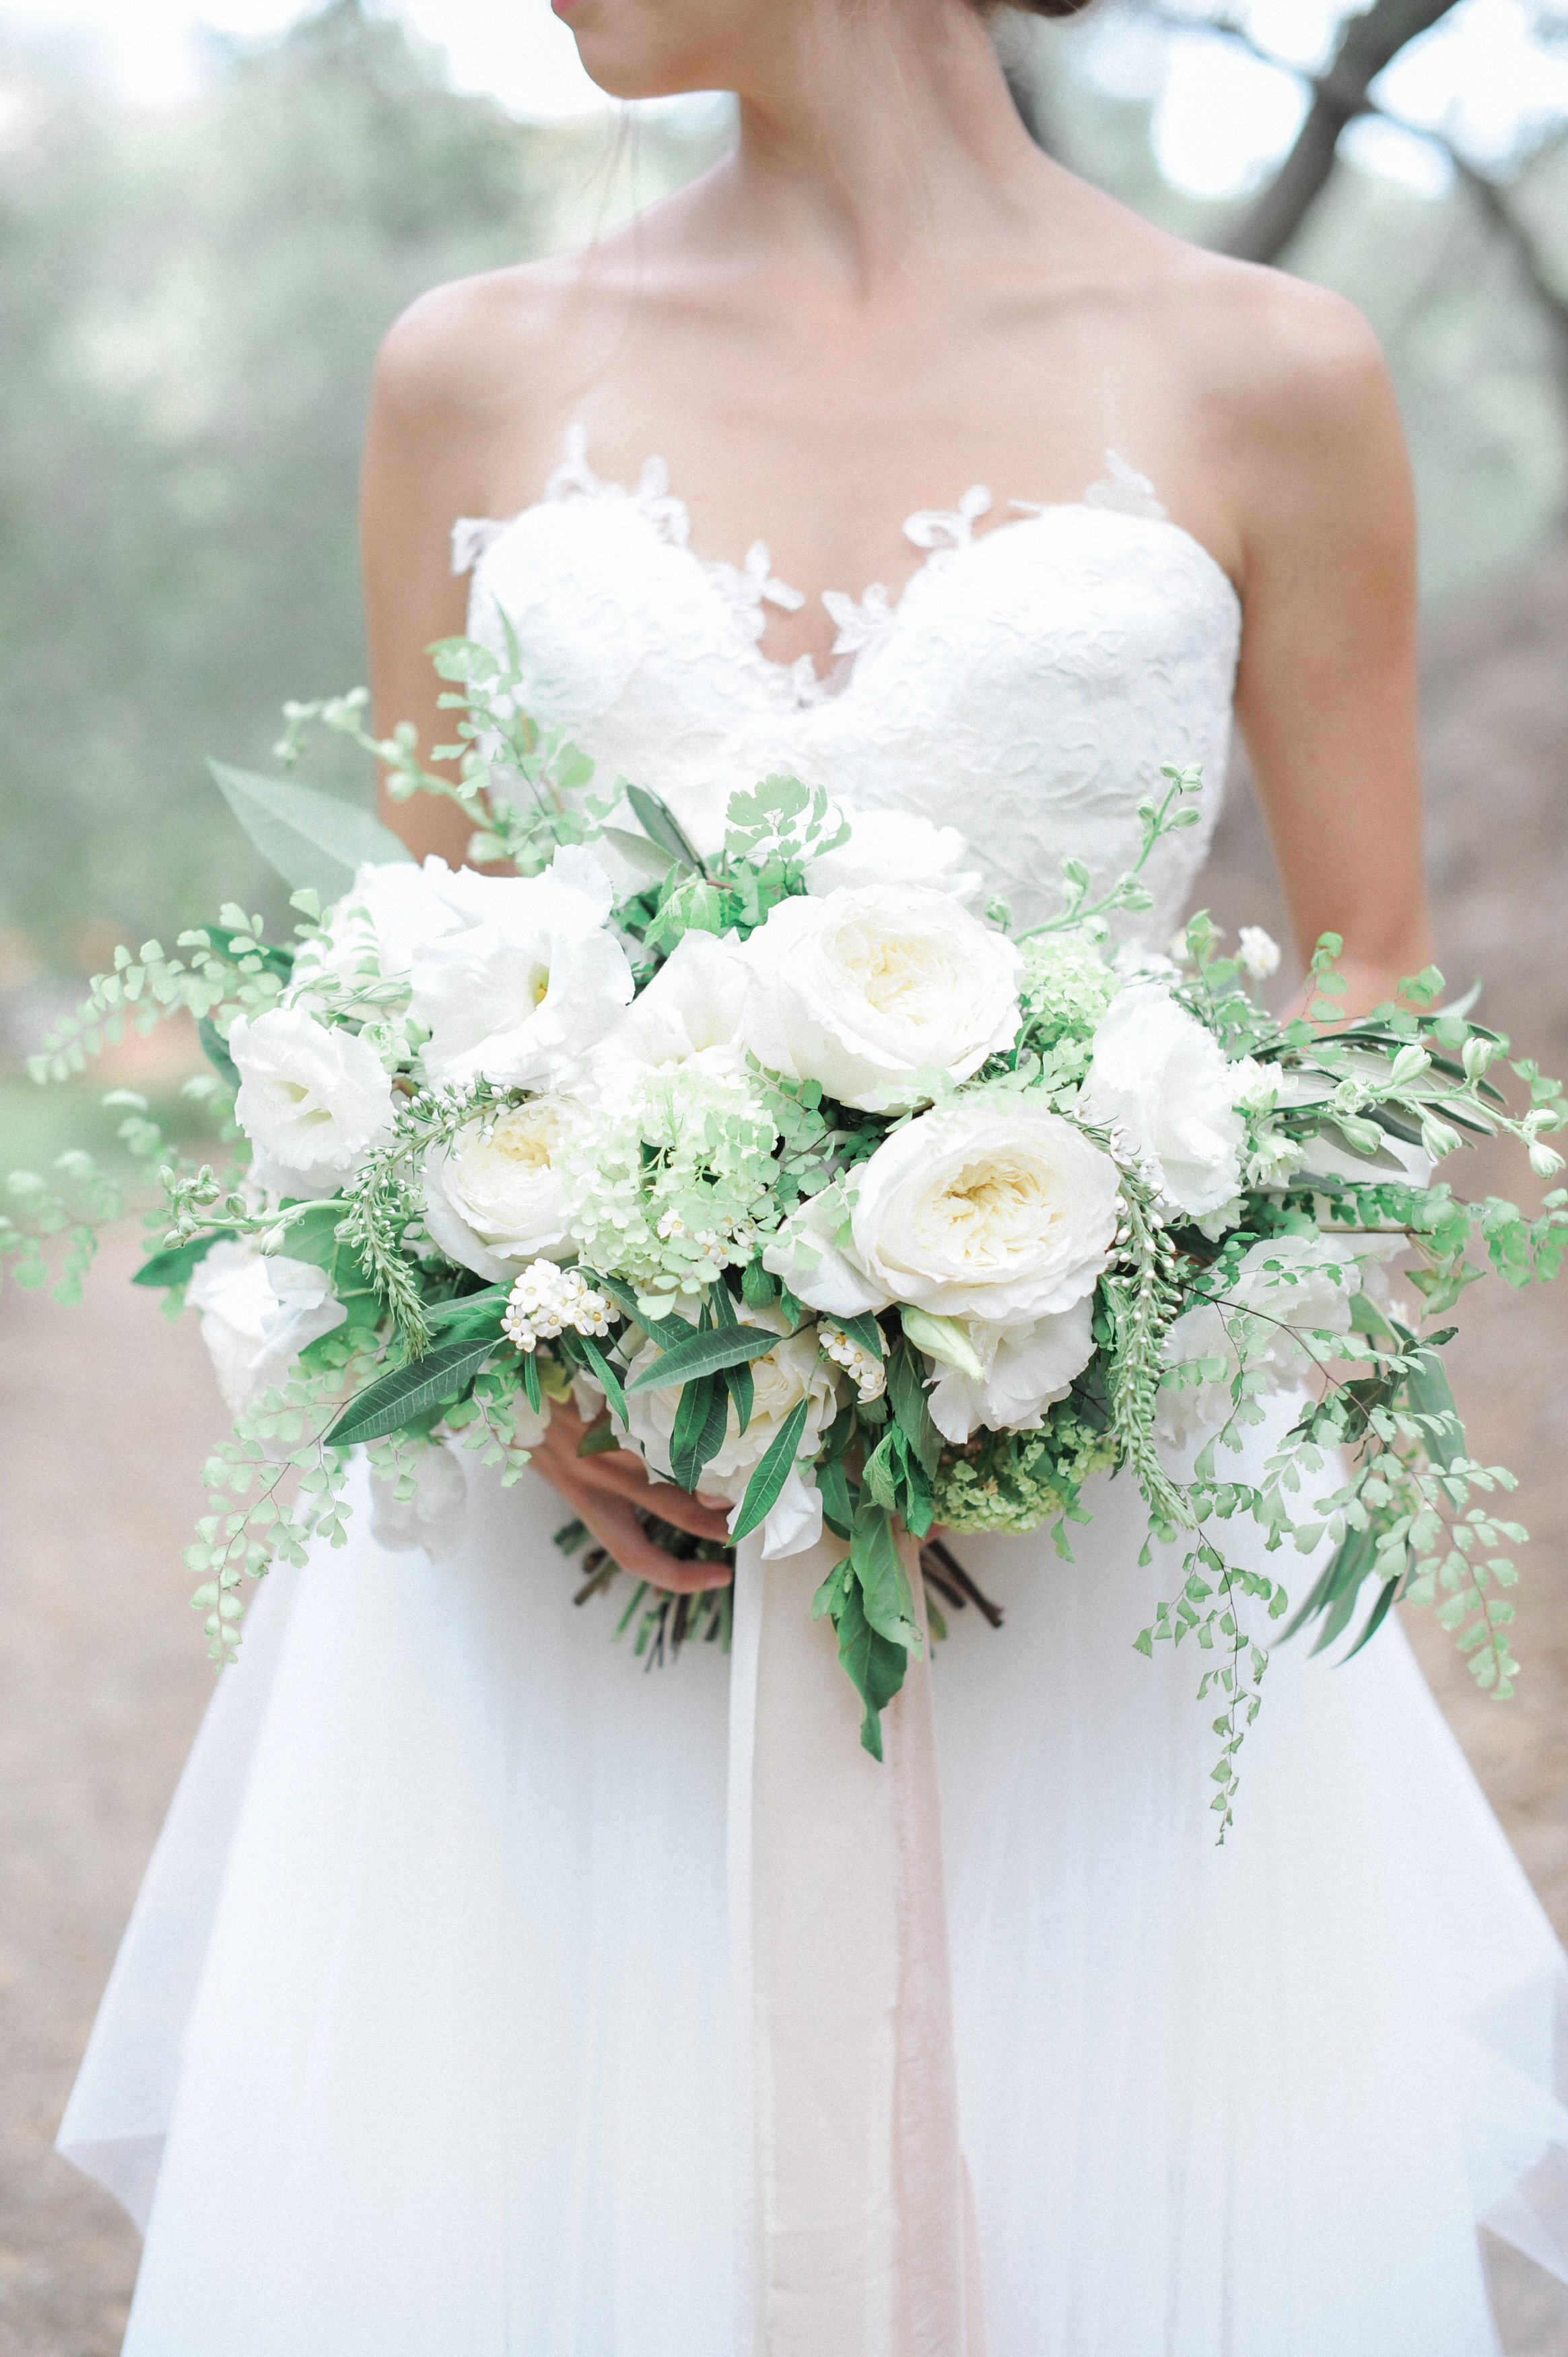 20 stunning wedding bouquets with ferns | martha stewart